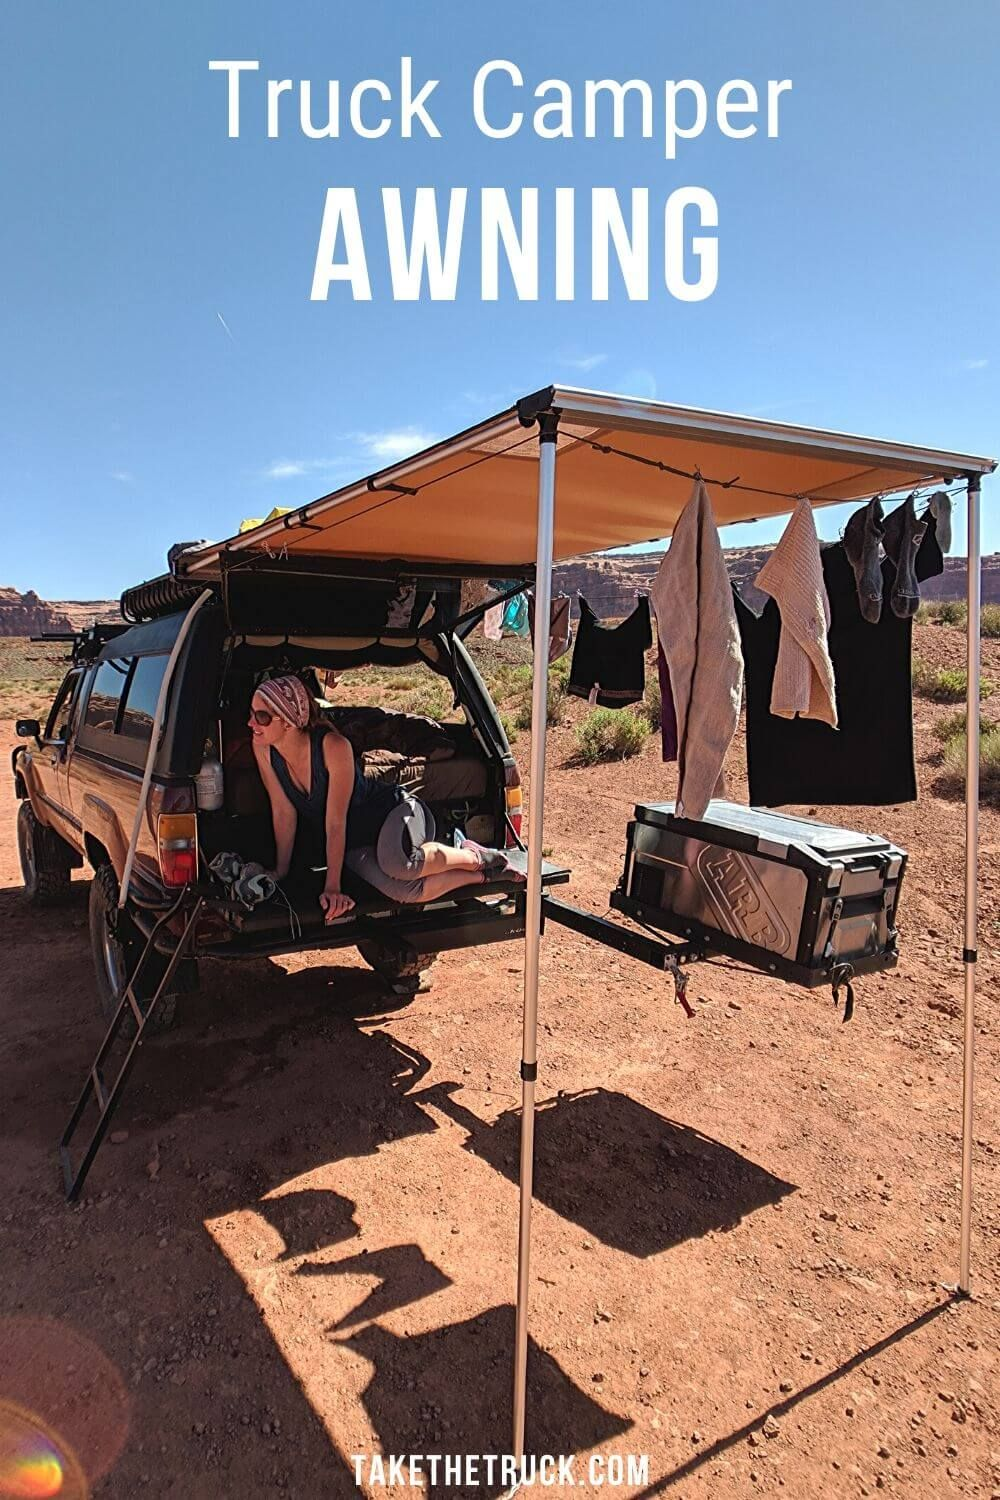 Truck Camper Awning How To Install A Rear Awning For Truck Camping Take The Truck In 2020 Camper Awnings Truck Camper Truck Camping